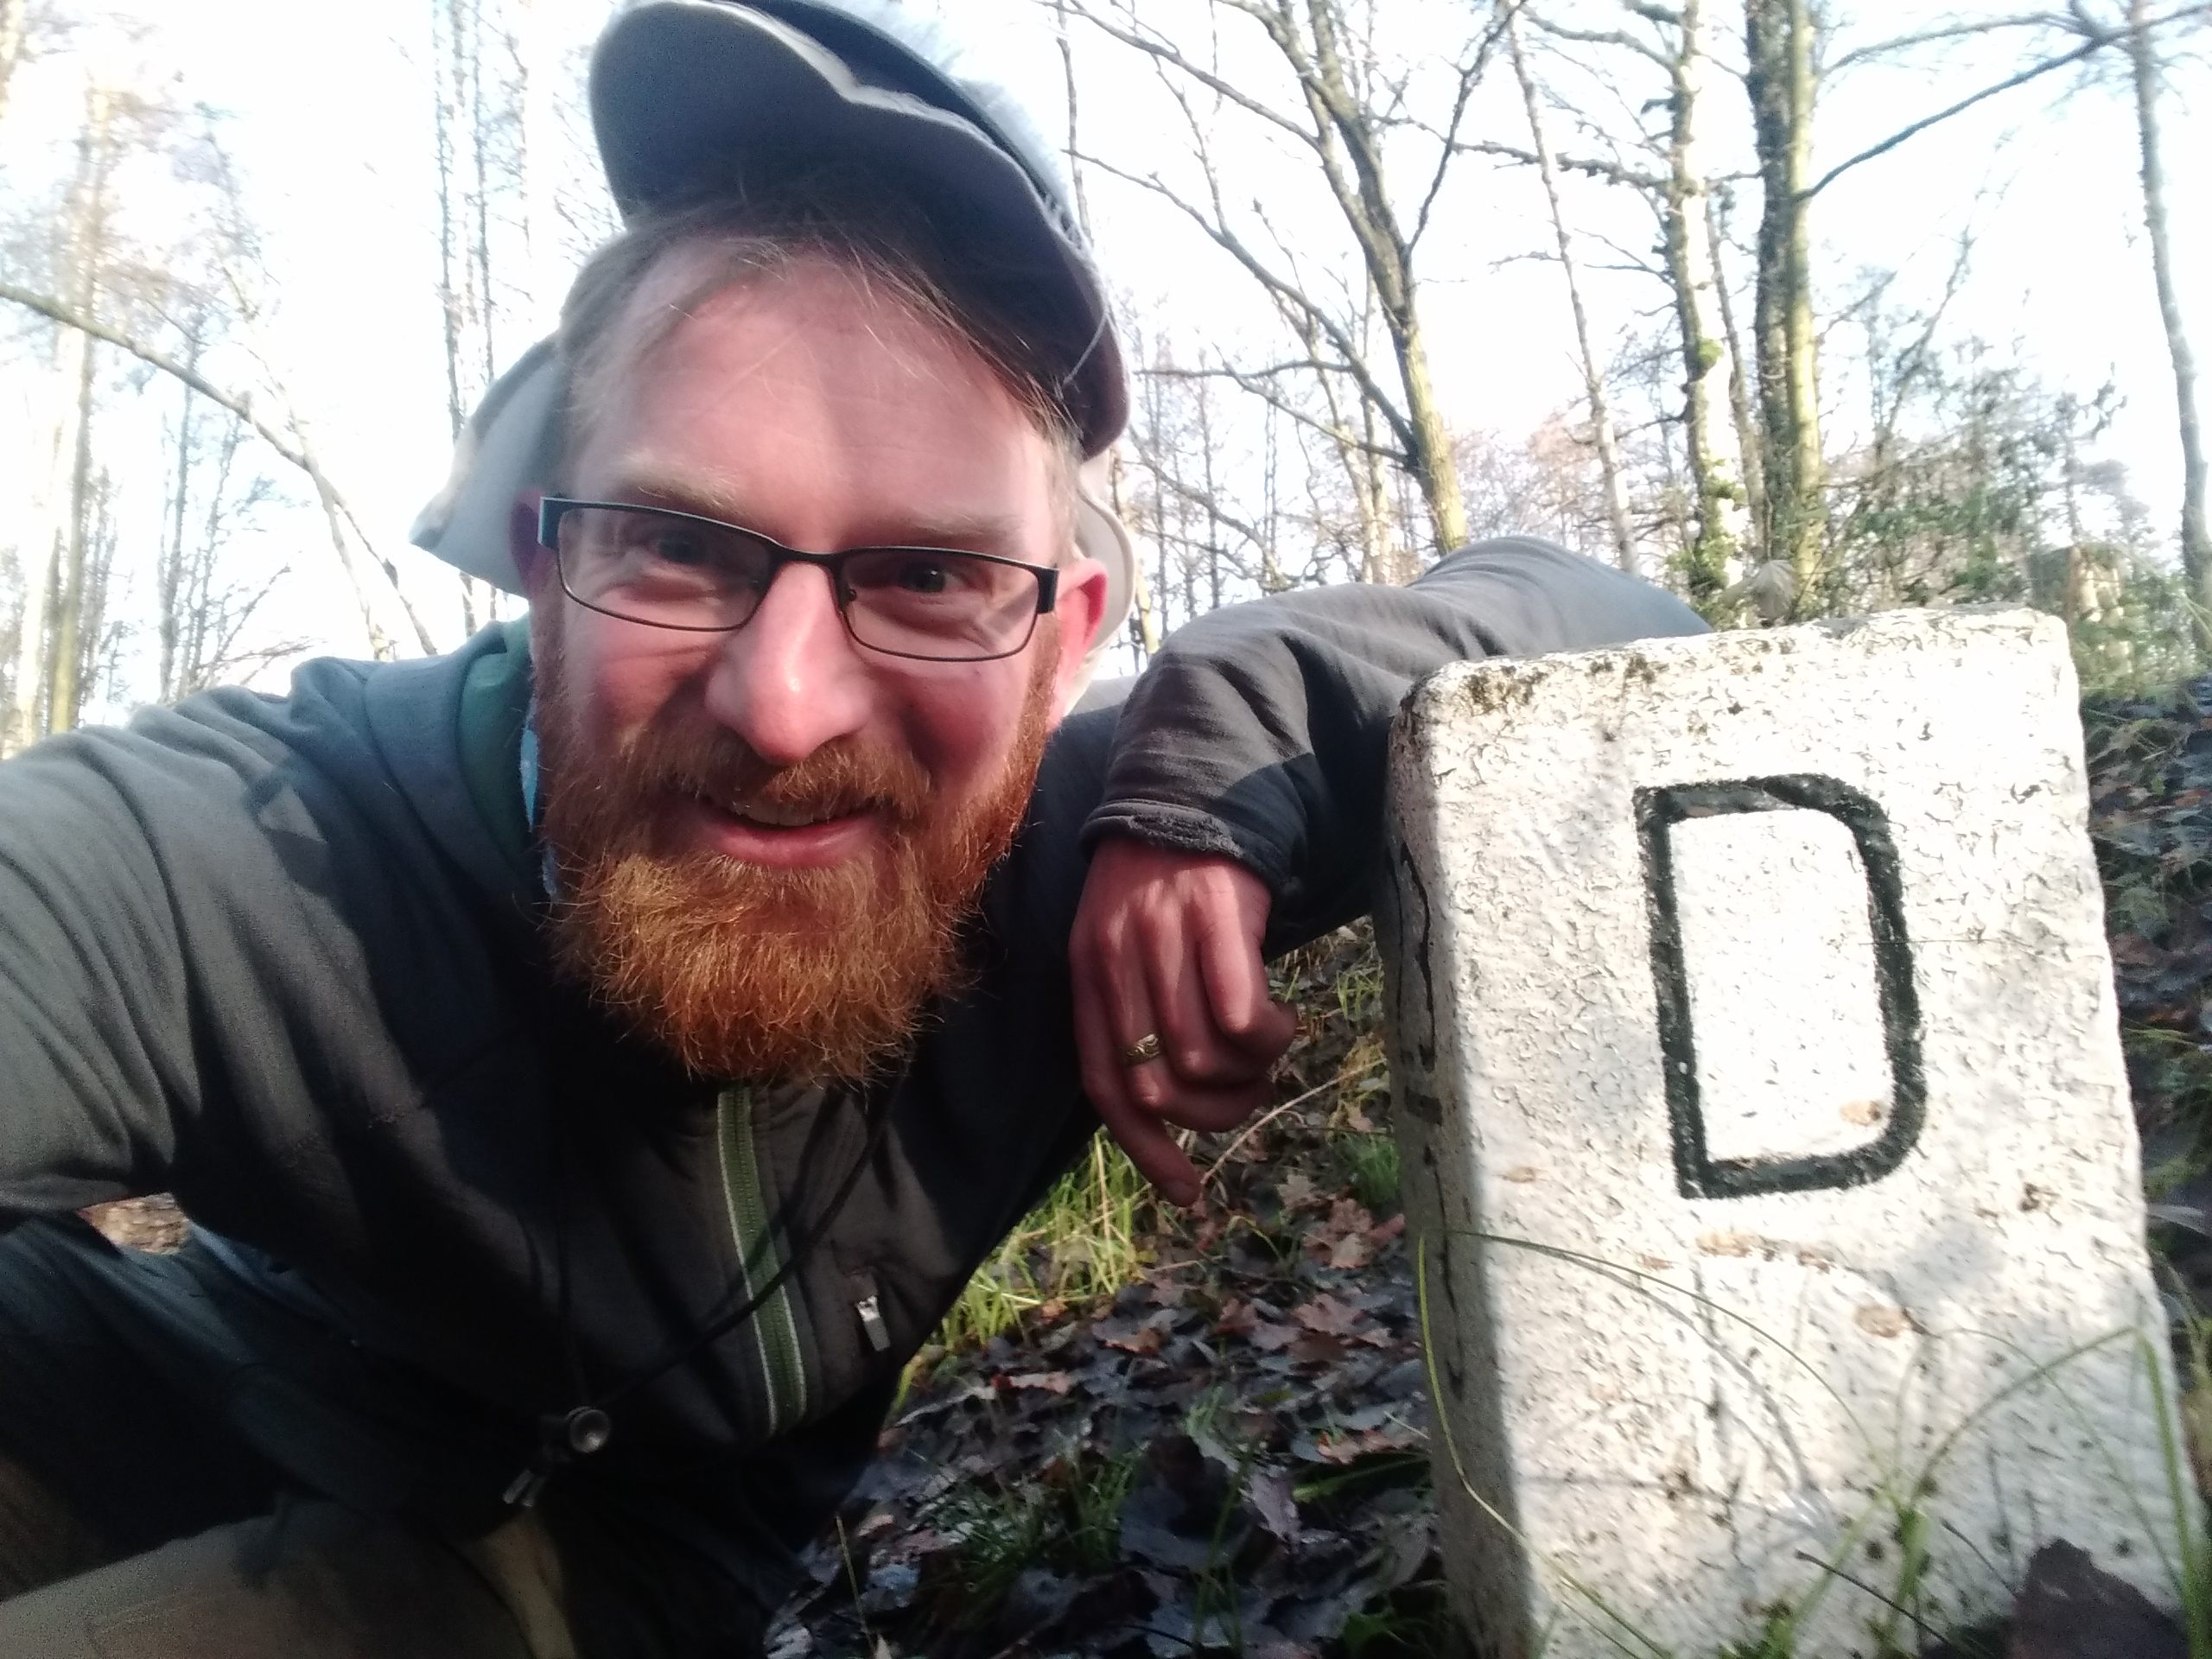 D for Deutschland - Border stone at the CZ-D border.